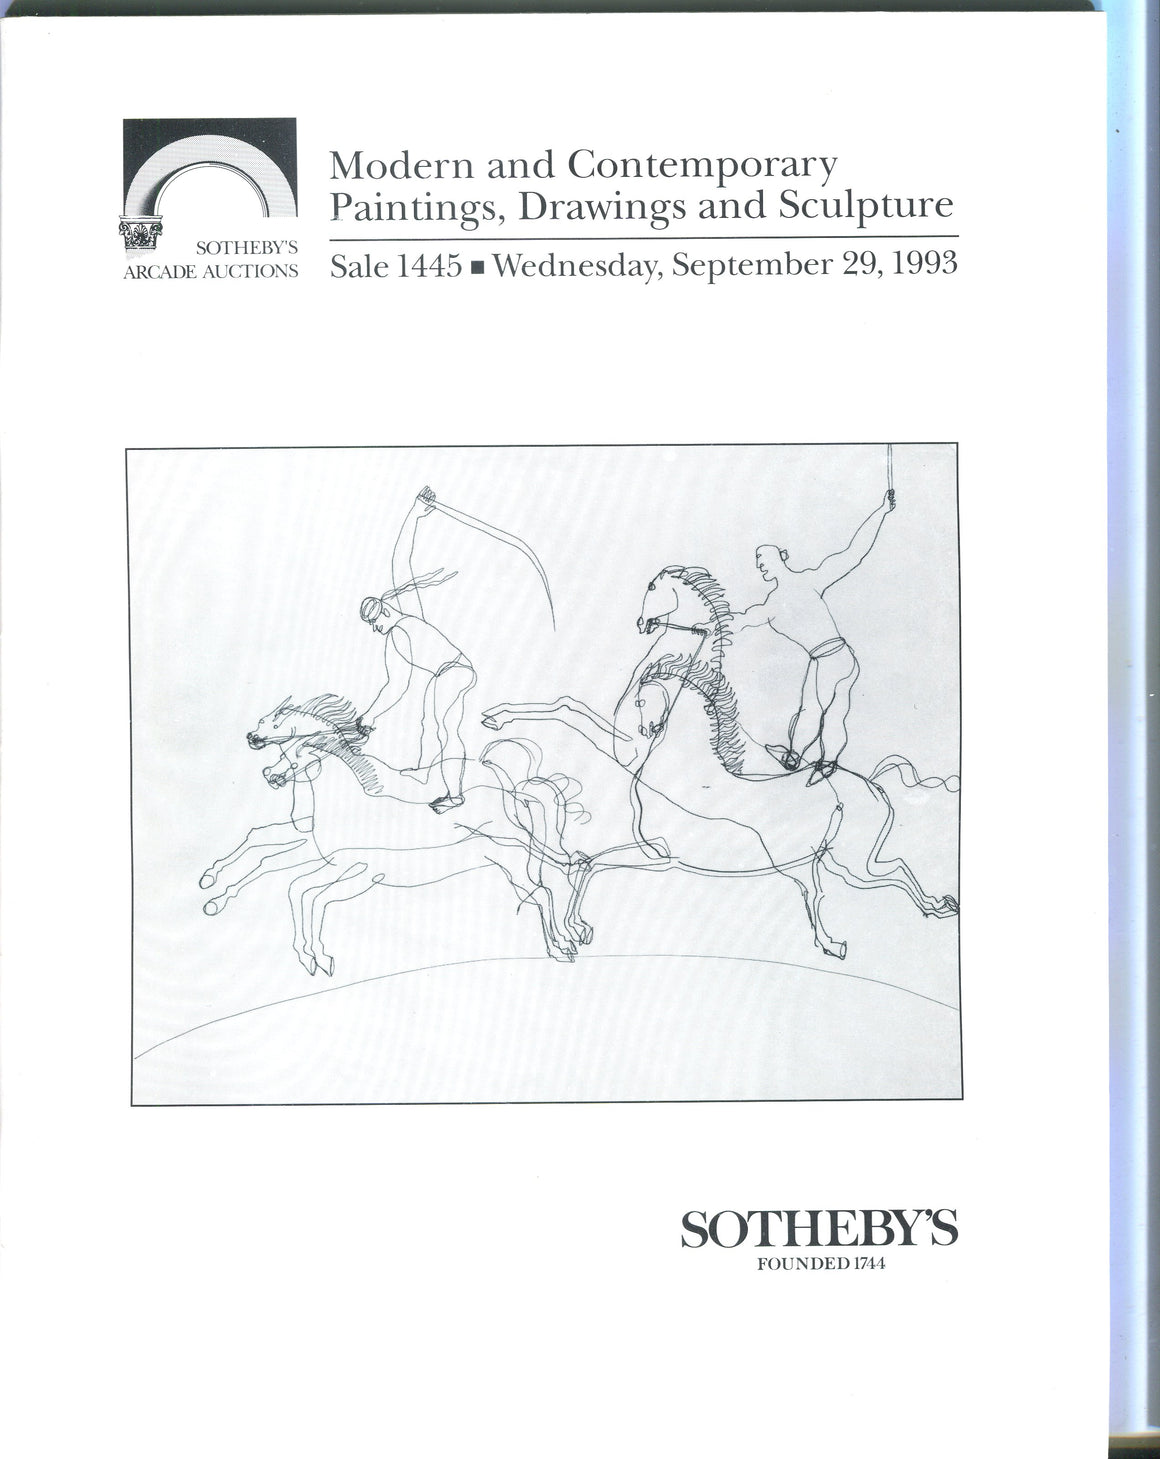 Sothebys Auction Catalog Sept 29 1993 Modern & Contemporary Paintings Drawings